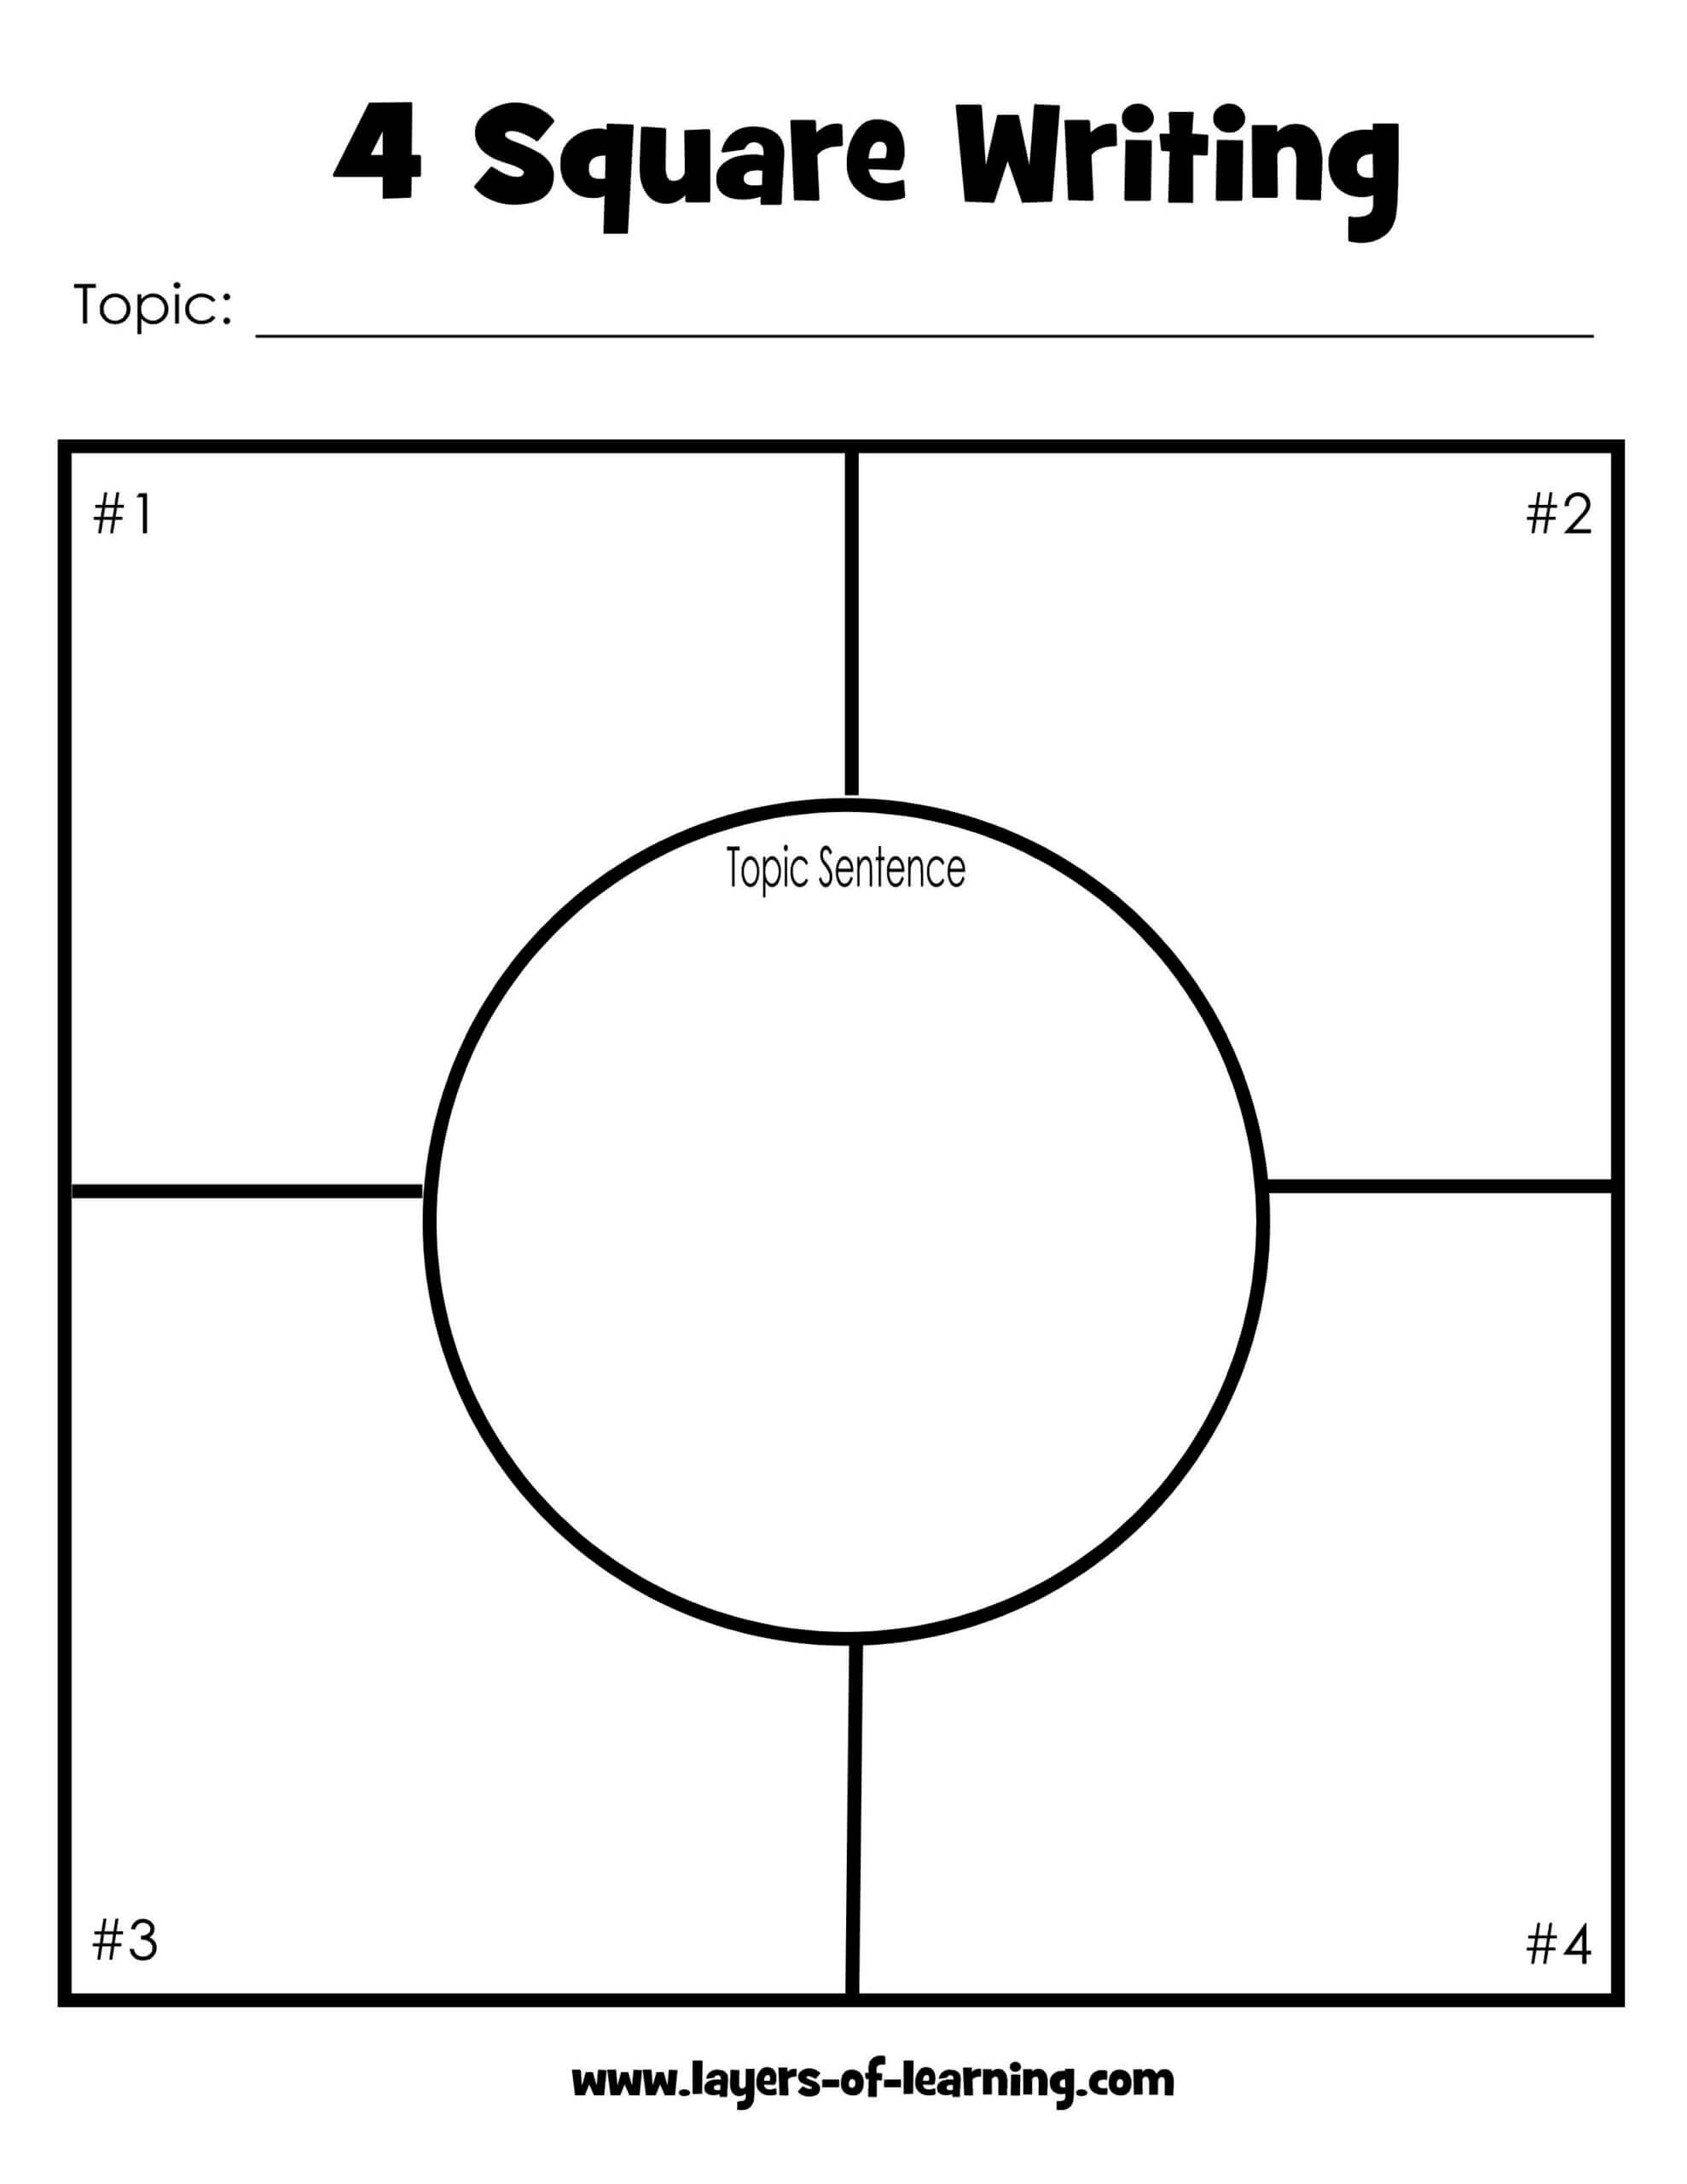 5 Best Photos Of Four Square Writing Template Printable With Blank Four Square Writing Template